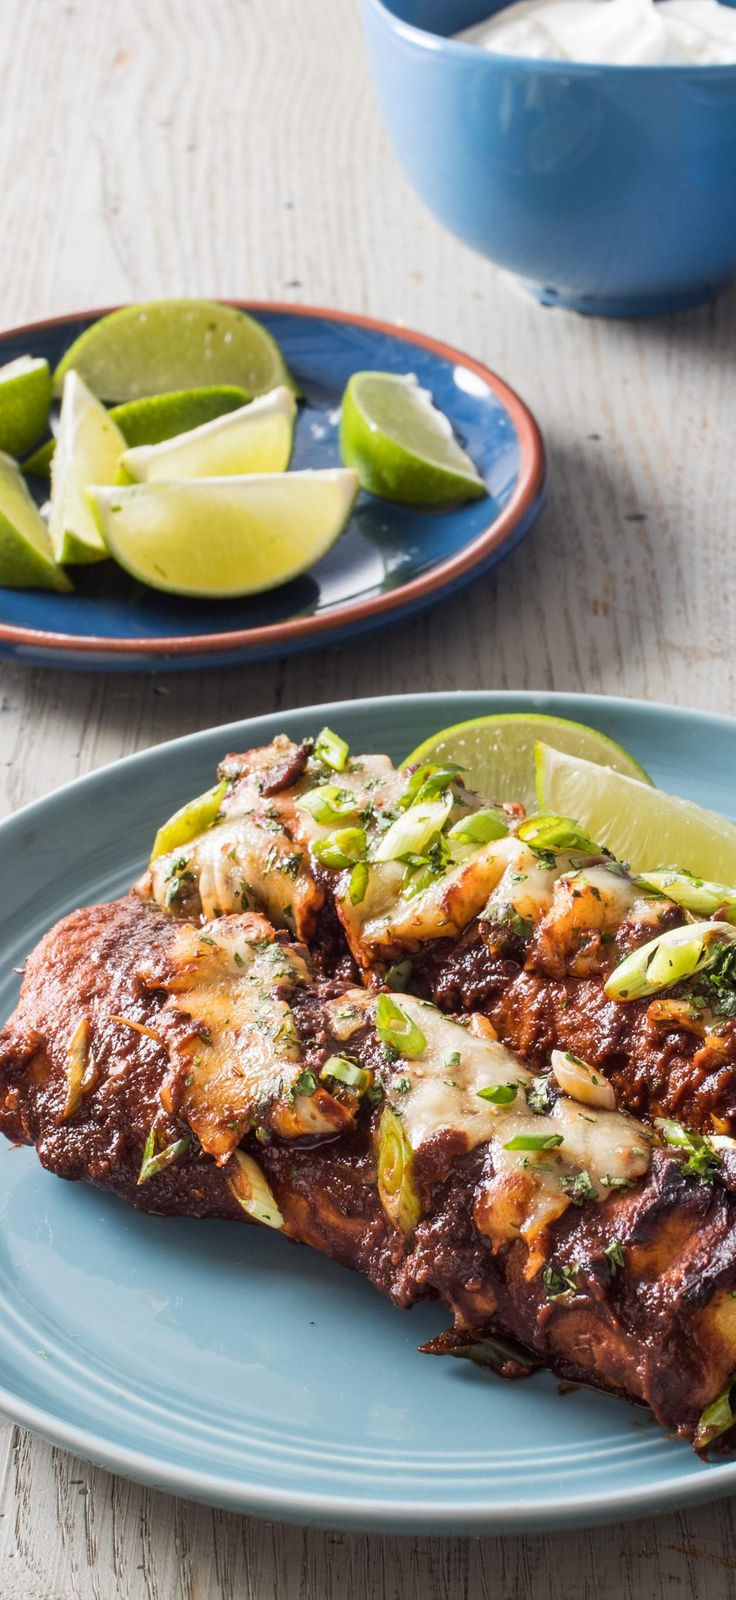 Ground Beef and Cheese Enchiladas. We use techniques from both sides of the border produce a quicker—but still deeply flavorful—take on this Tex-Mex staple.